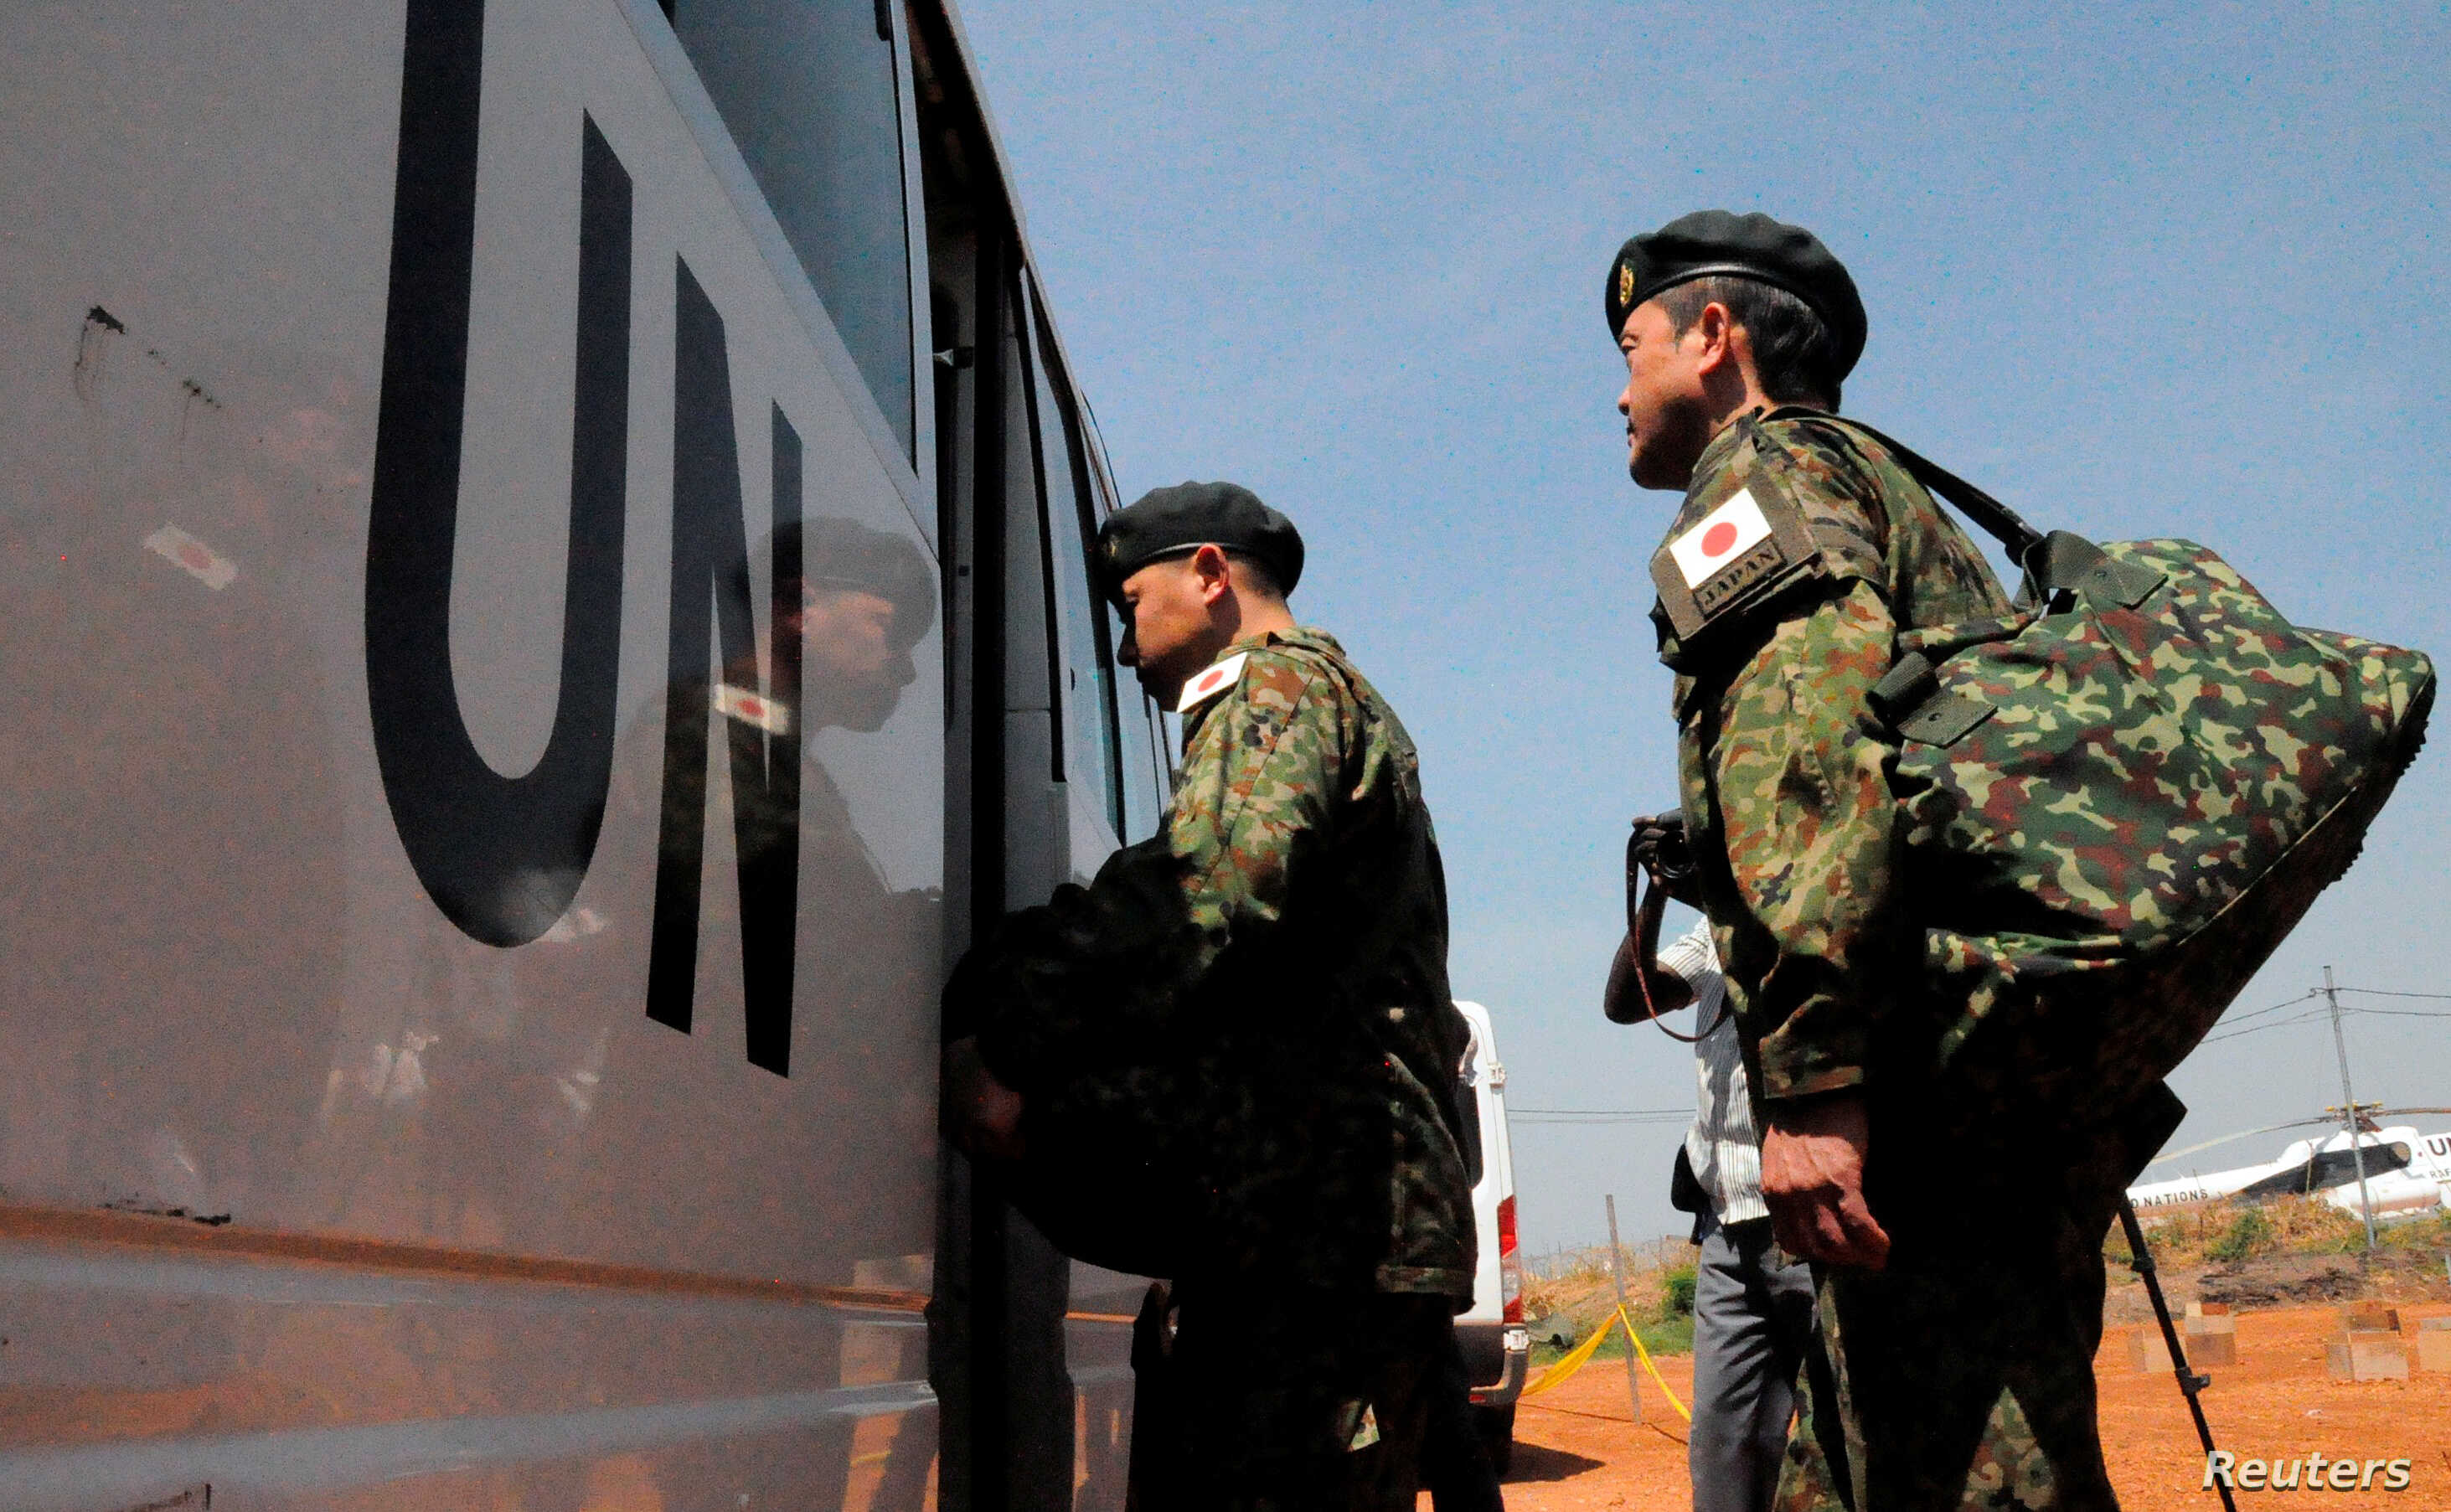 Japanese peacekeepers arrive at the Juba airport to participate in the United Nations Mission in South Sudan in South Sudan's capital Juba, Nov. 21, 2016.